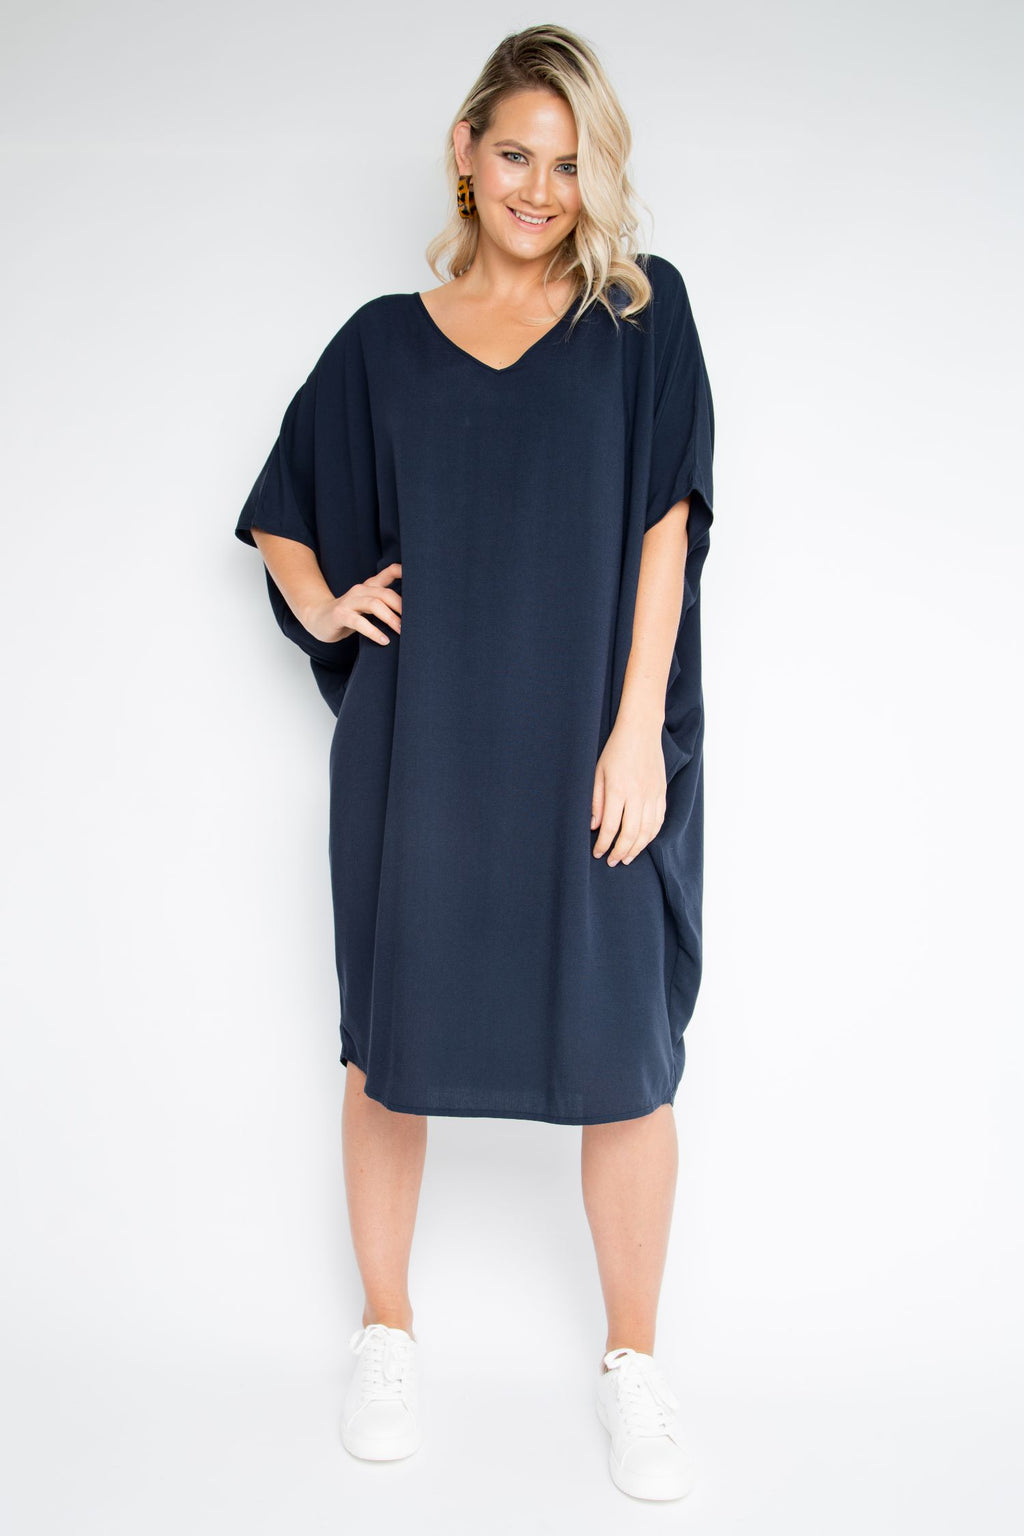 Woven Miracle Dress in Midnight